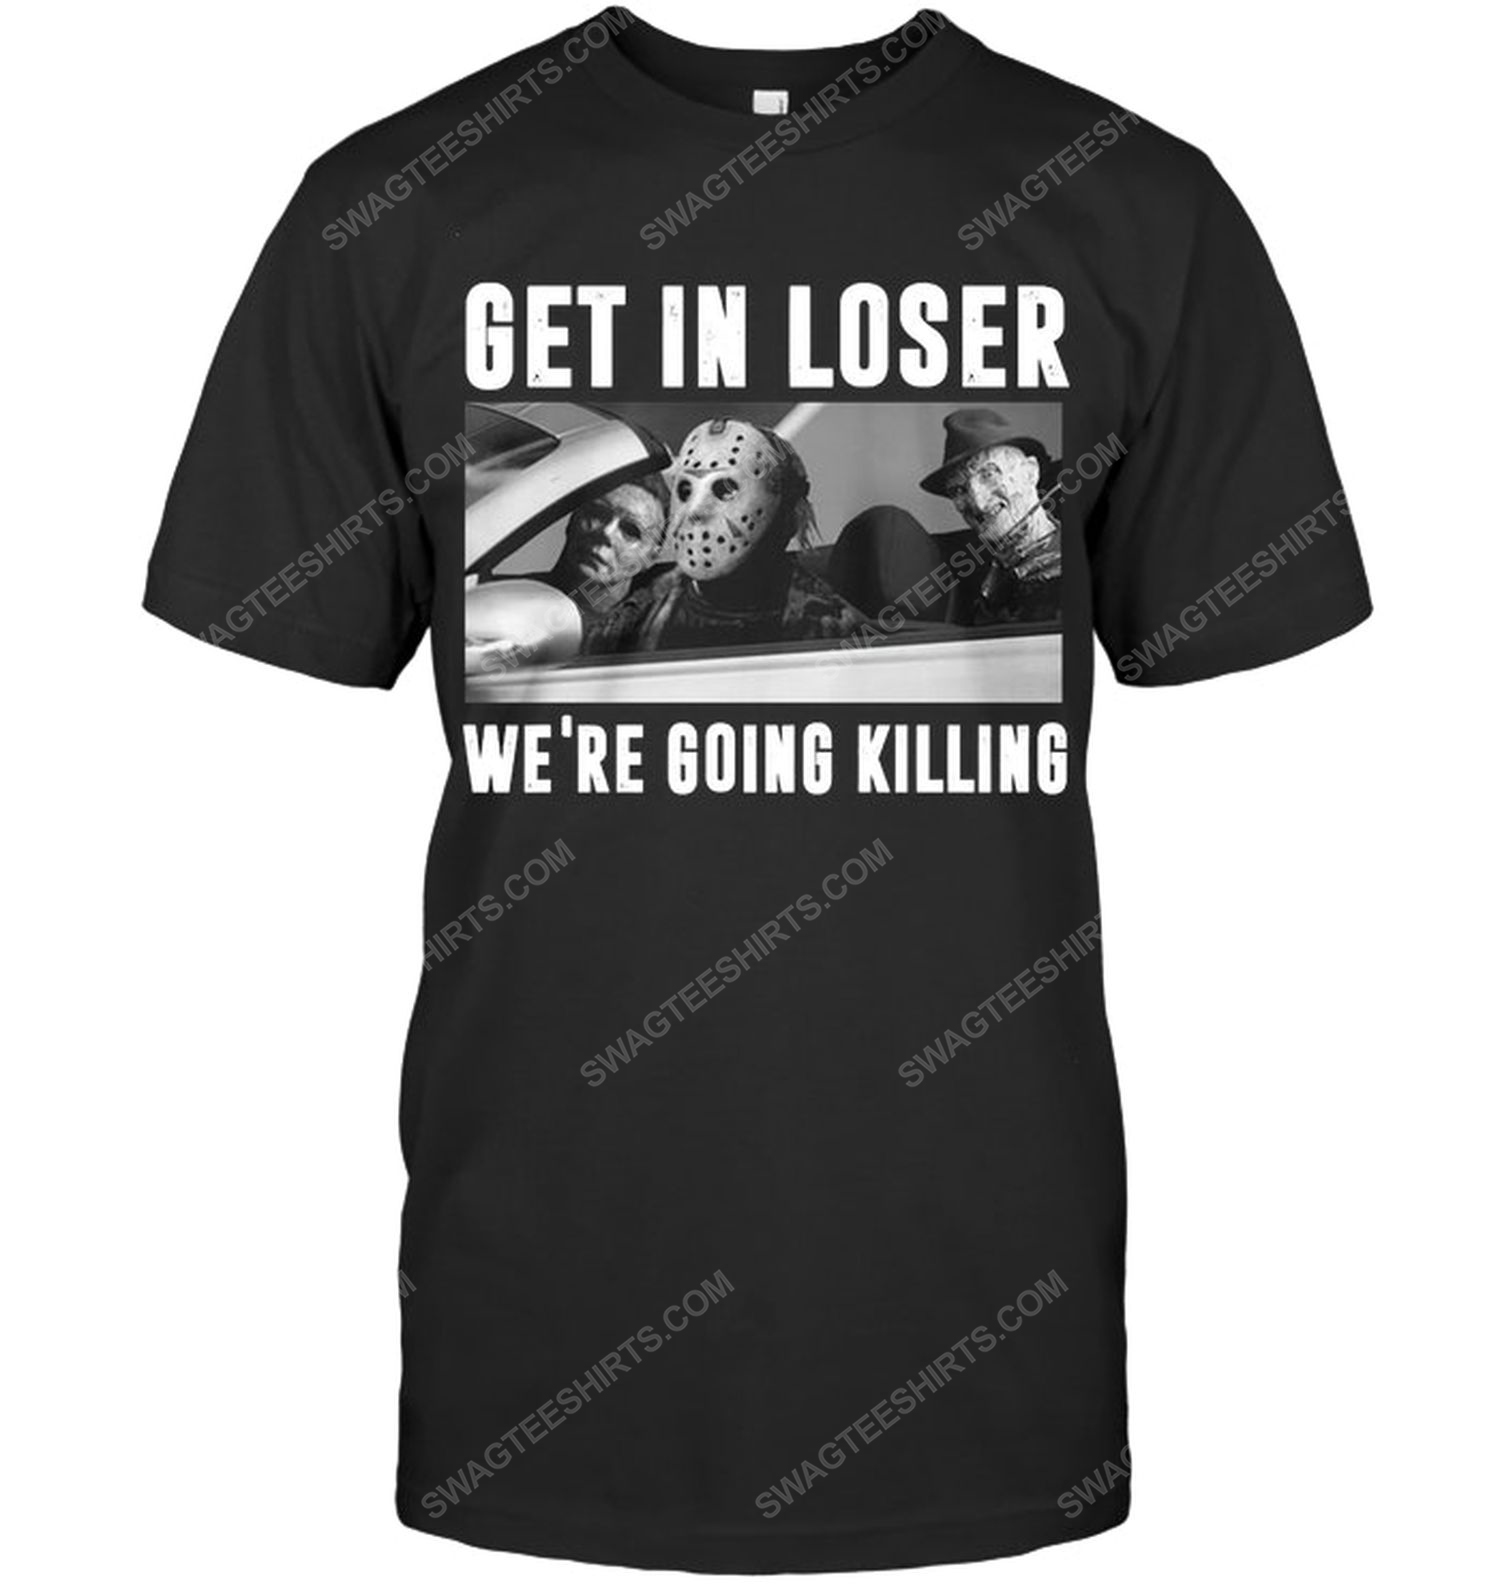 Get in loser we're going killing horror characters shirt 1